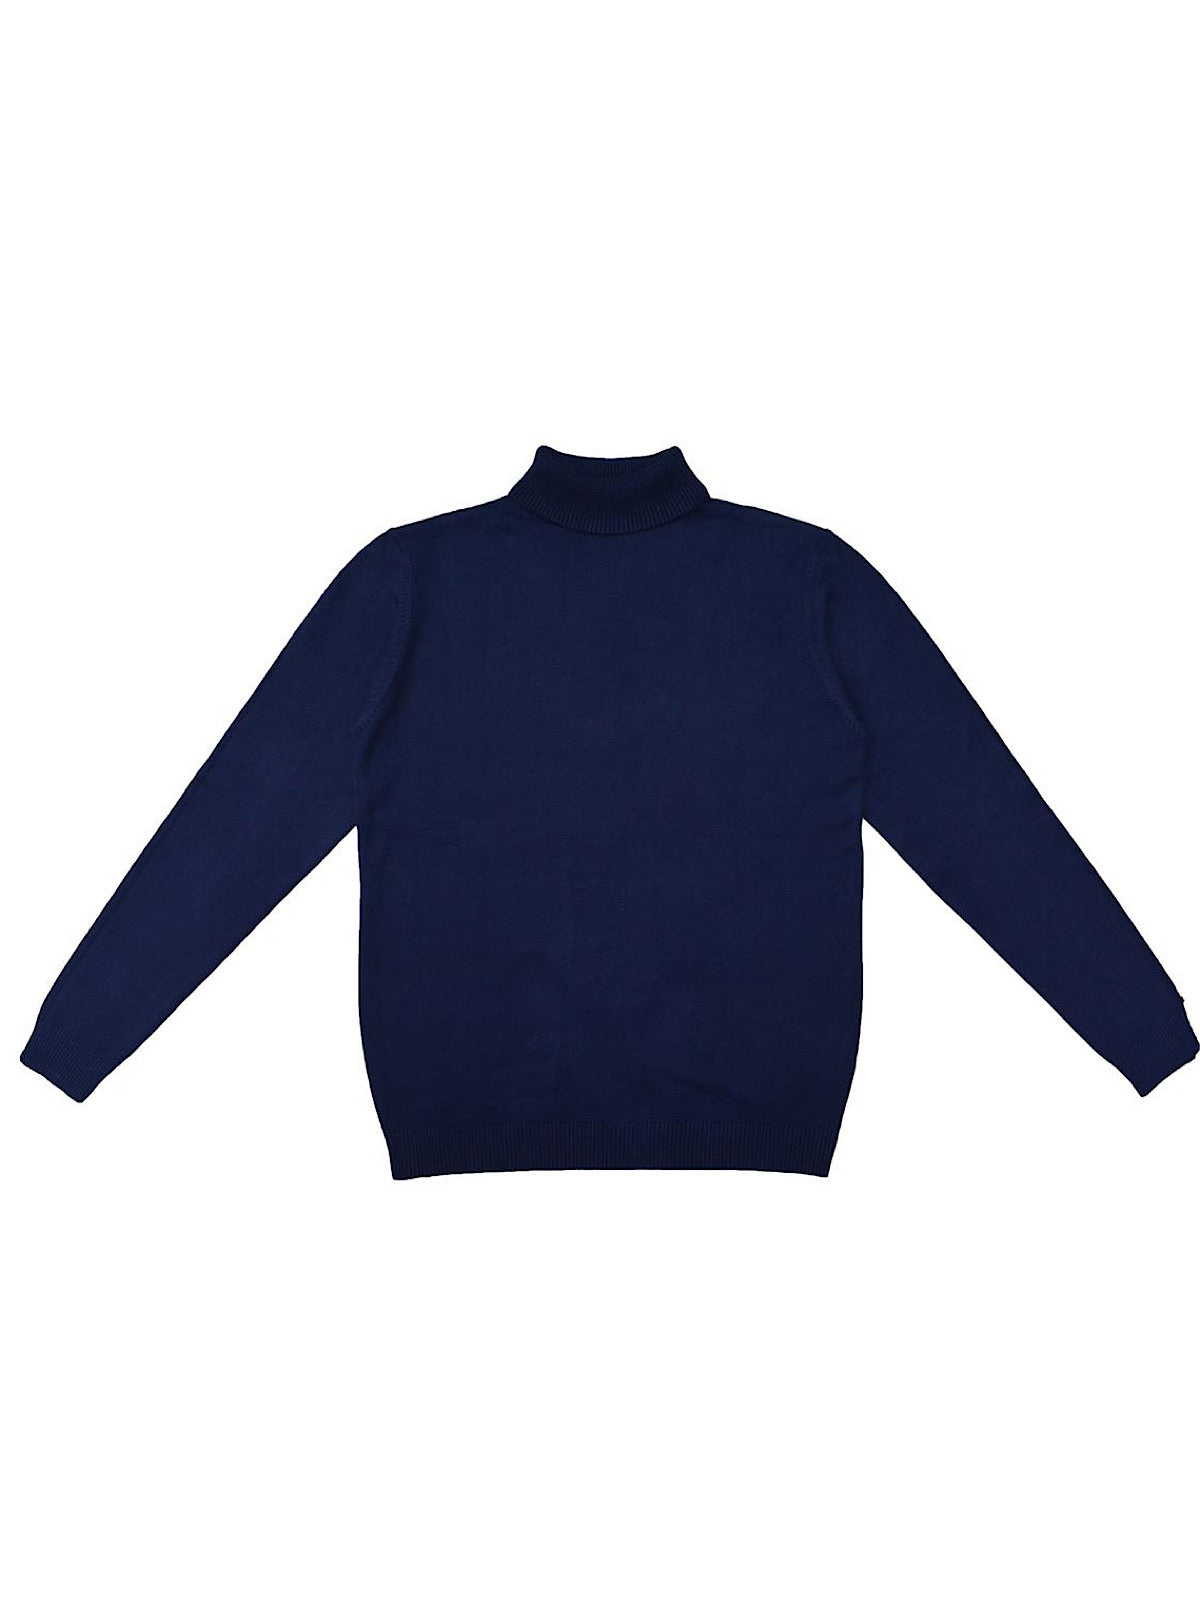 Xray Sweater - Turtleneck - Navy